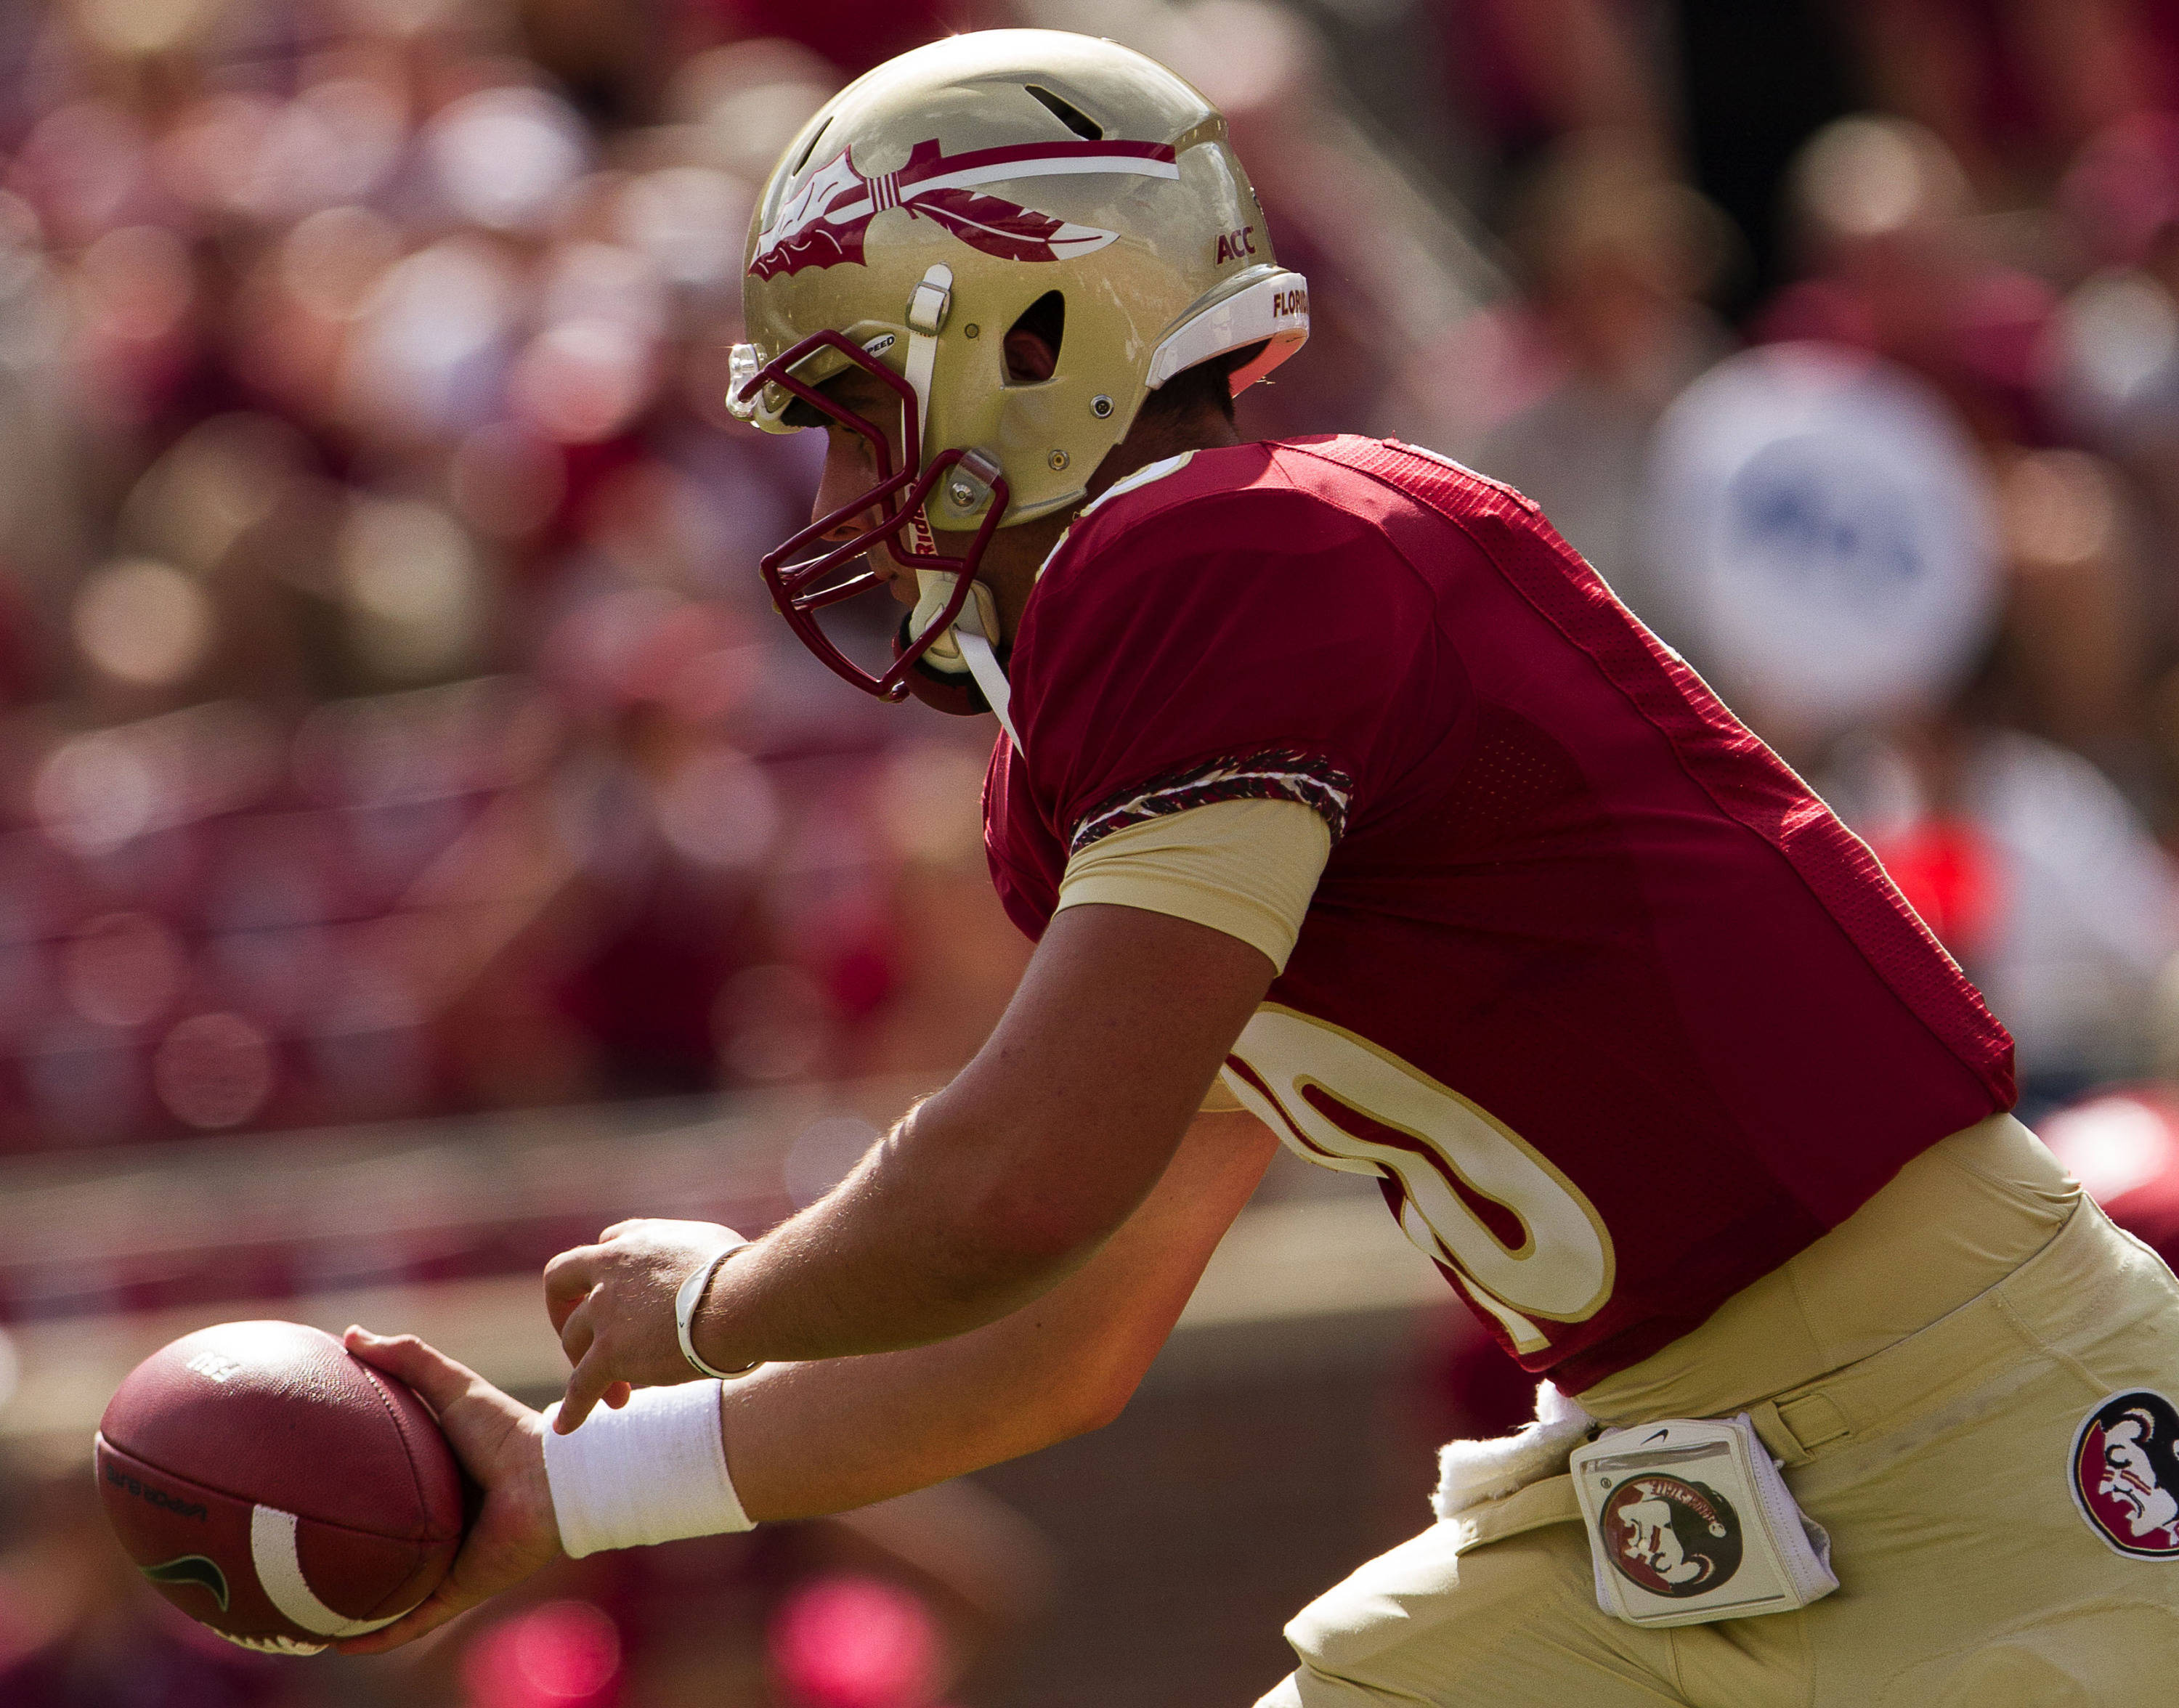 Sean Maguire (10) makes a handoff during FSU Football's 63-0 shutout of Maryland on Saturday, October 5, 2013 in Tallahassee, Fla.